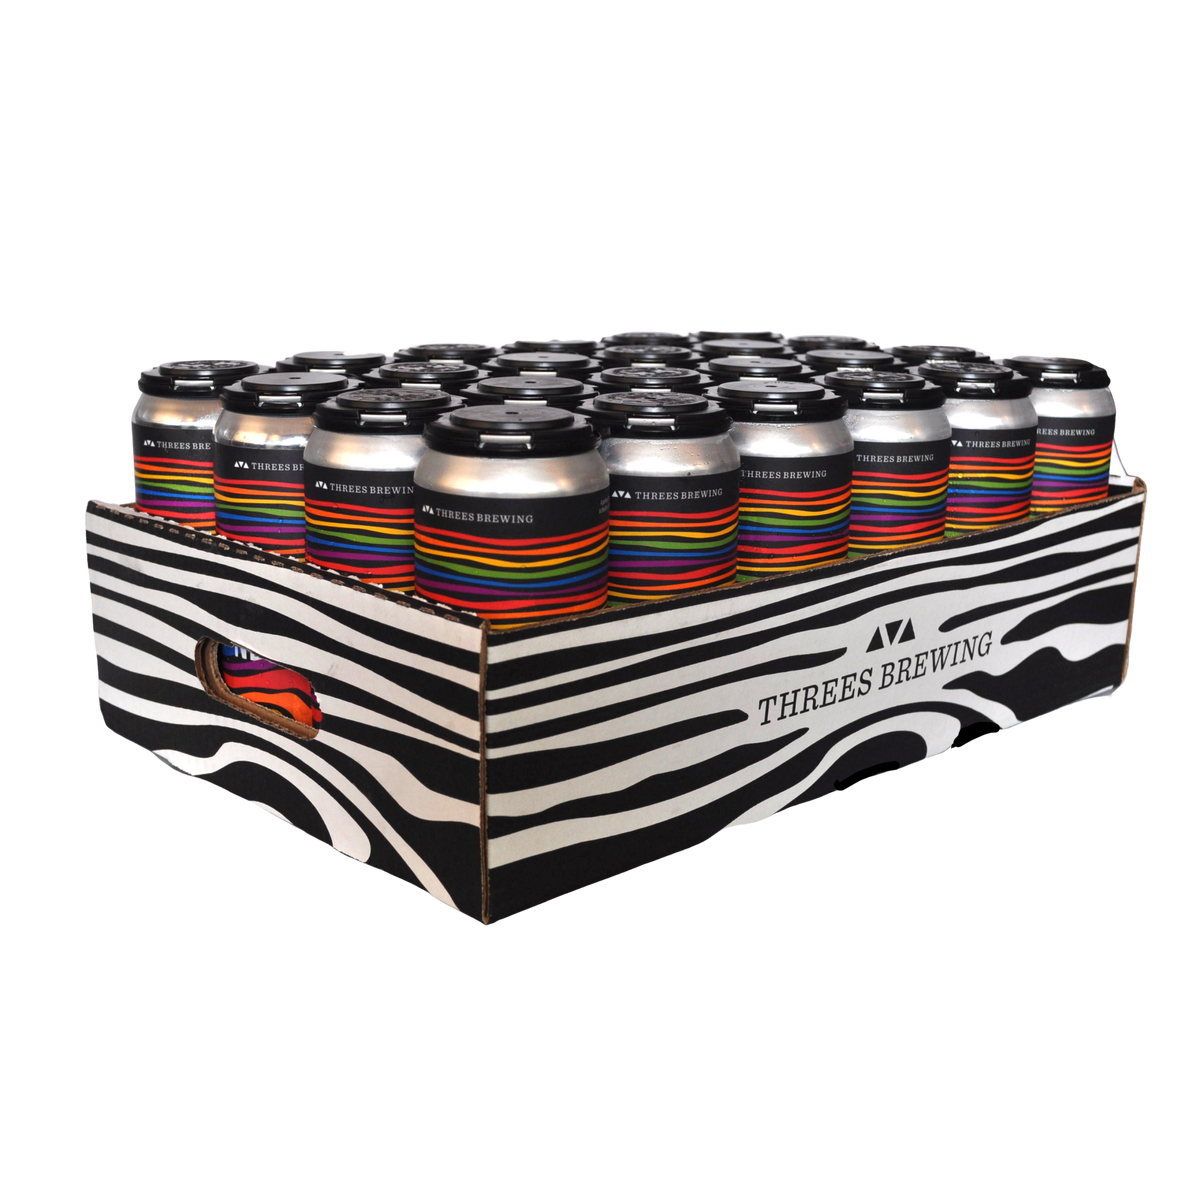 Gender Neutral (Pale Lager) 24-Pack